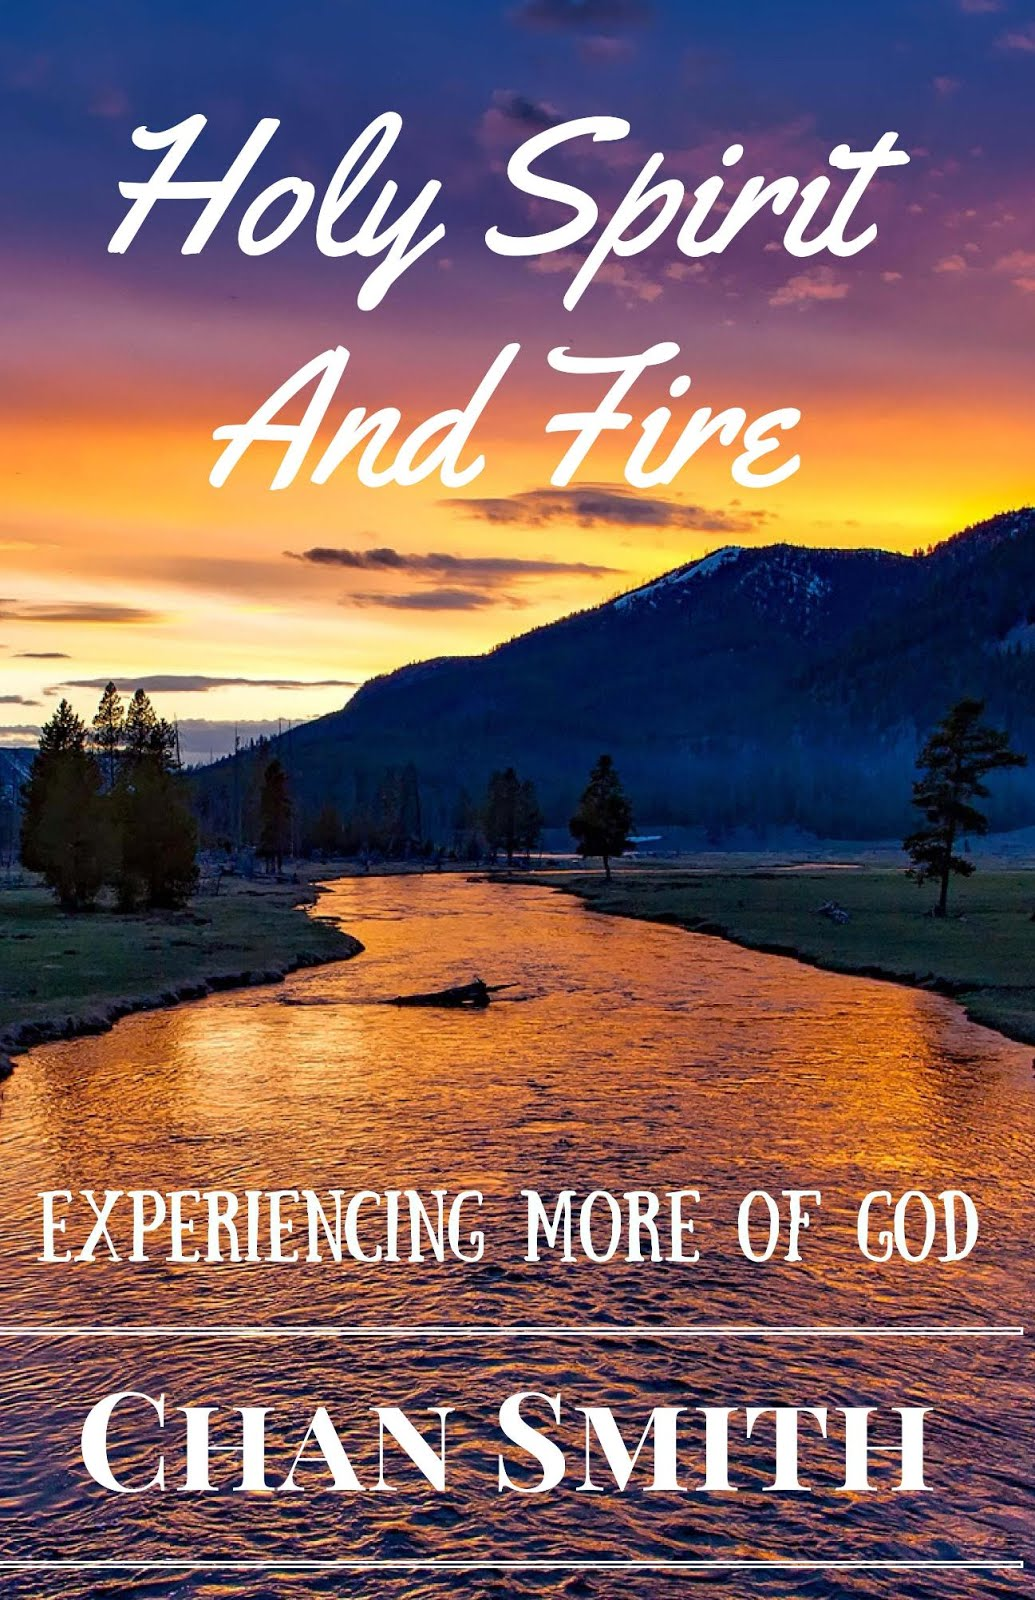 Experiencing More Of God